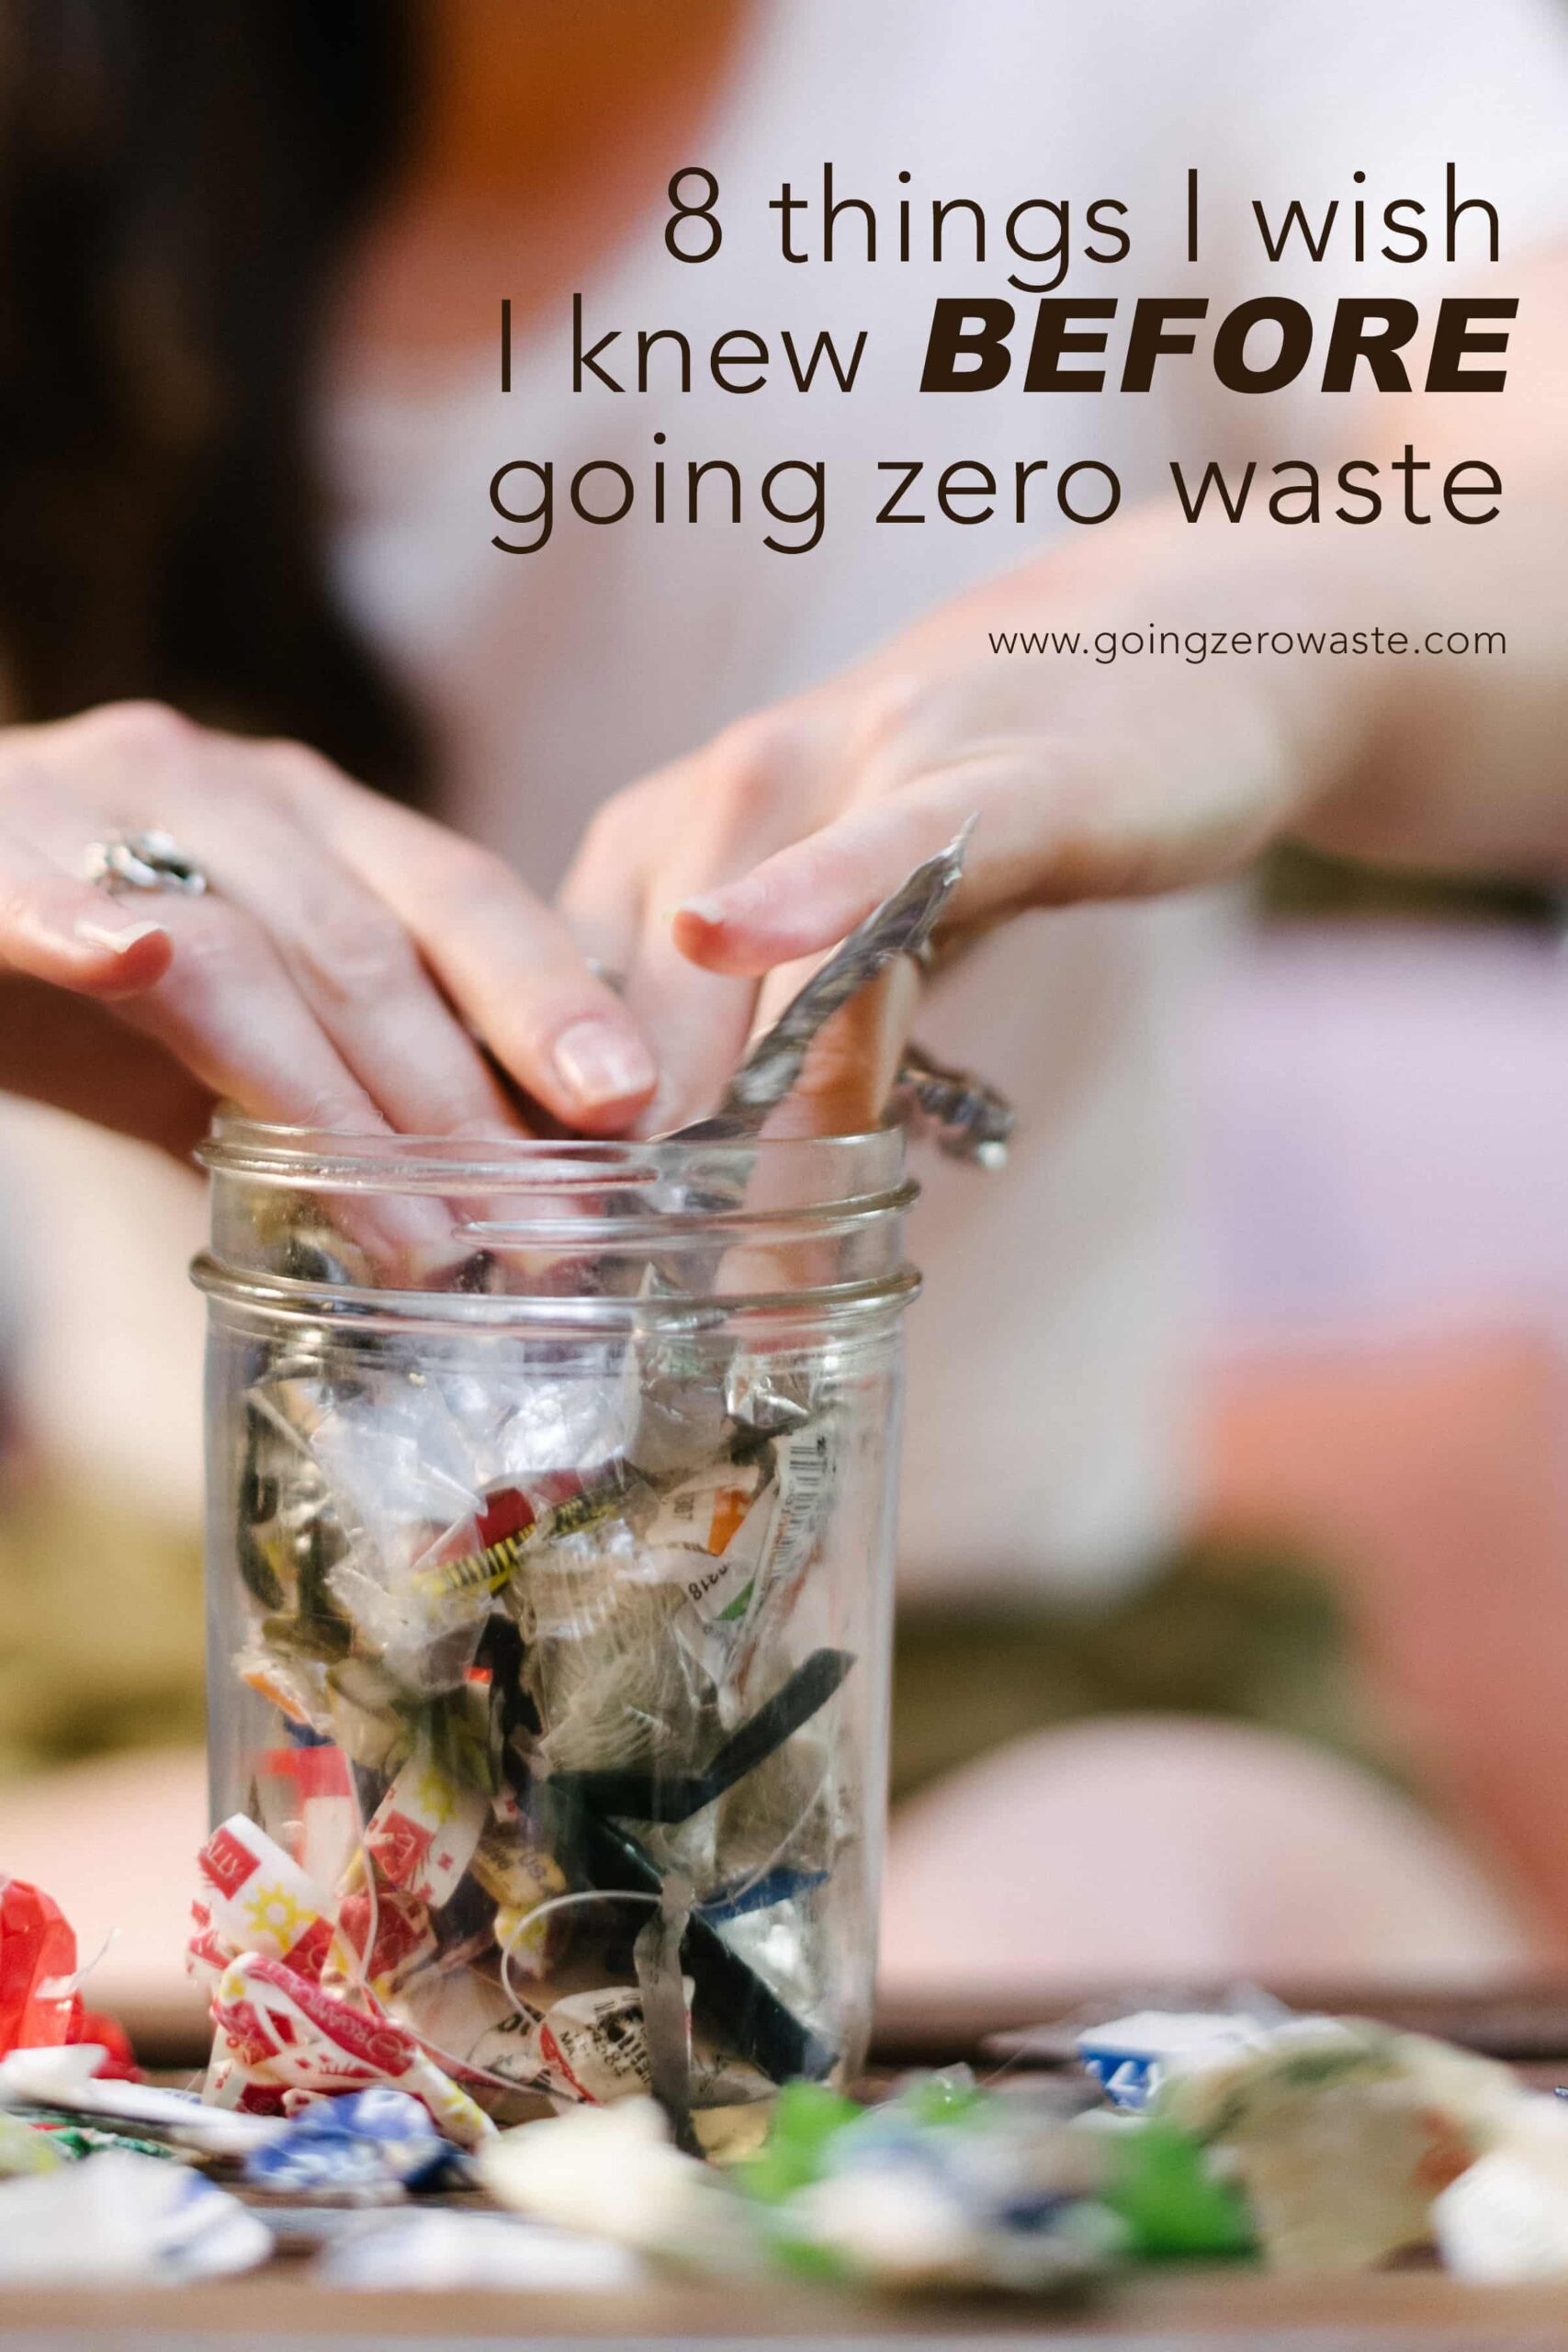 8 Things I Wish I Knew BEFORE Going Zero Waste